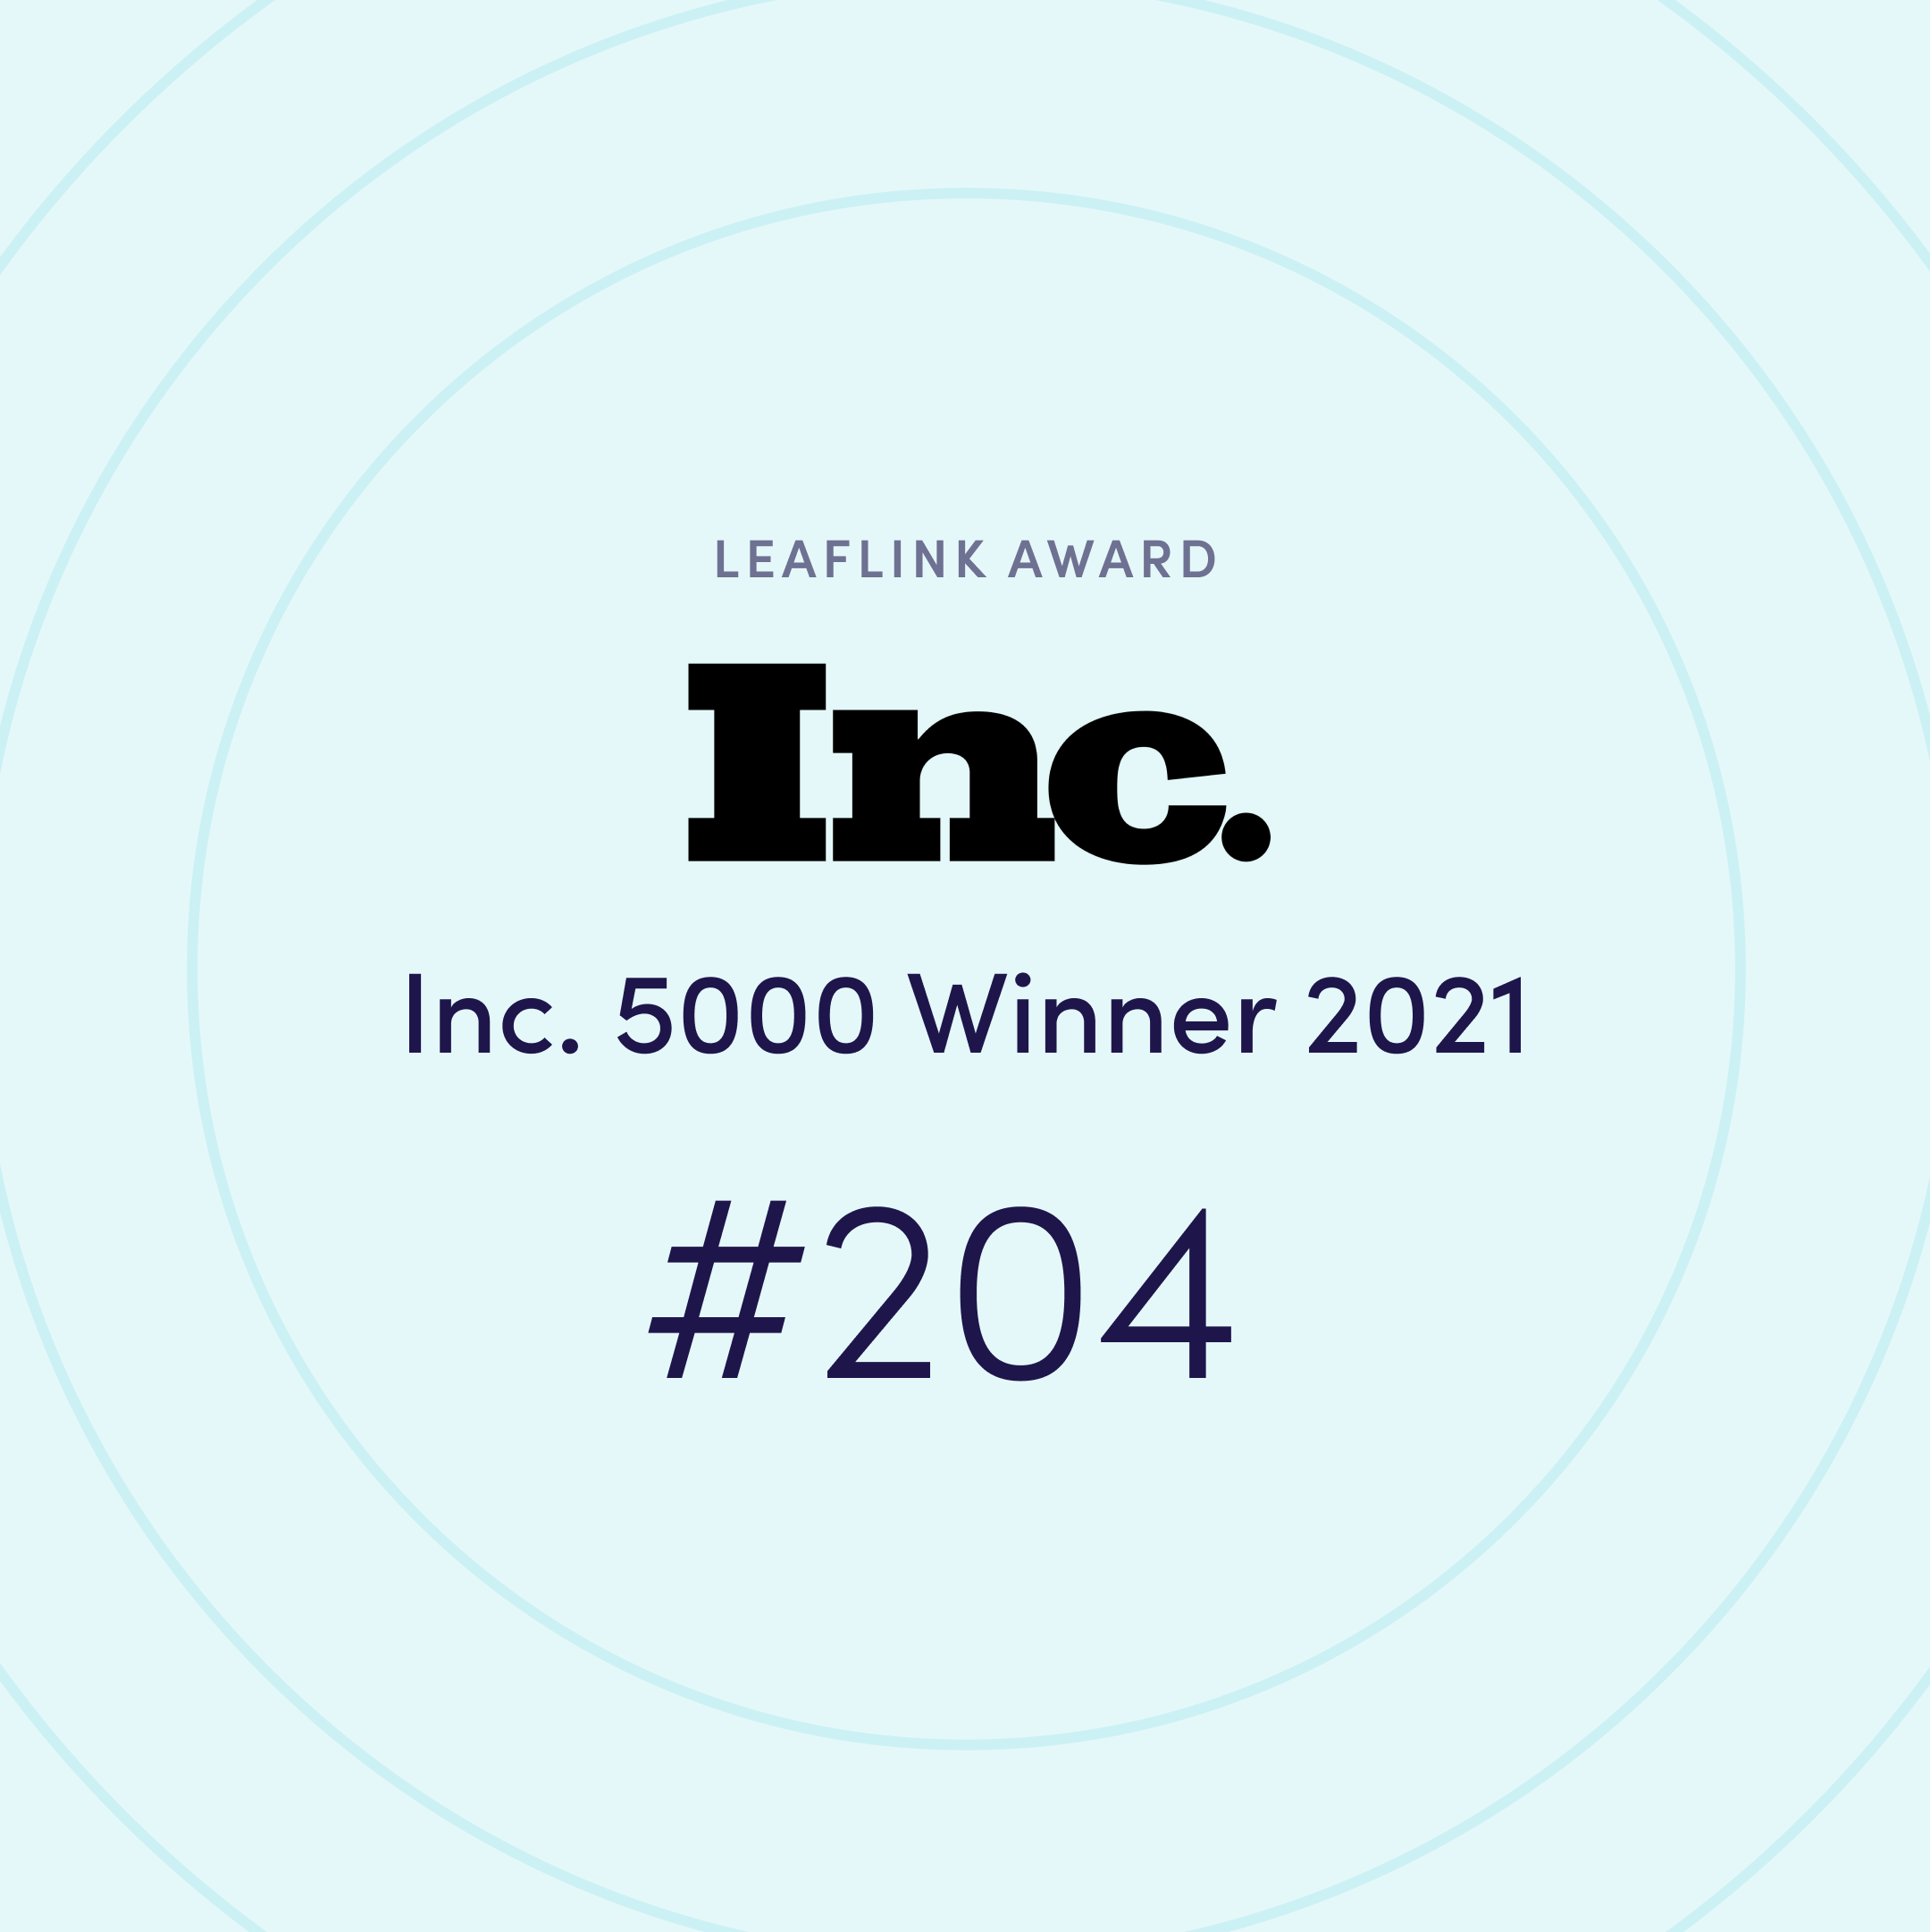 Inc. 5000 - The Top 5000 Fastest-Growing Private Companies in America